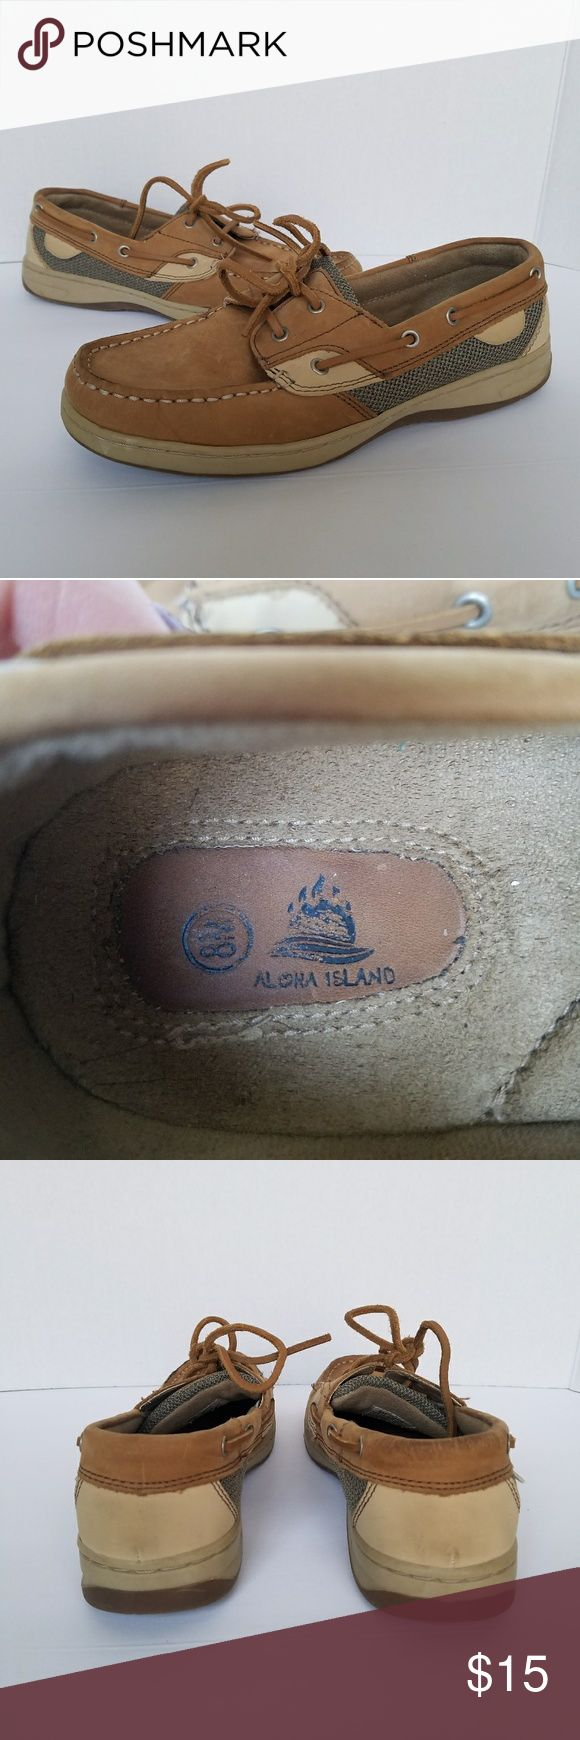 Leather Boat Shoes Aloha Island 8m Brown leather boat shoes in fair condition. Soles are in perfect condition. Have some wear on tops. Leather is soft and there is a lot of life left. No smells. Smoke and pet free. Aloha Island Shoes